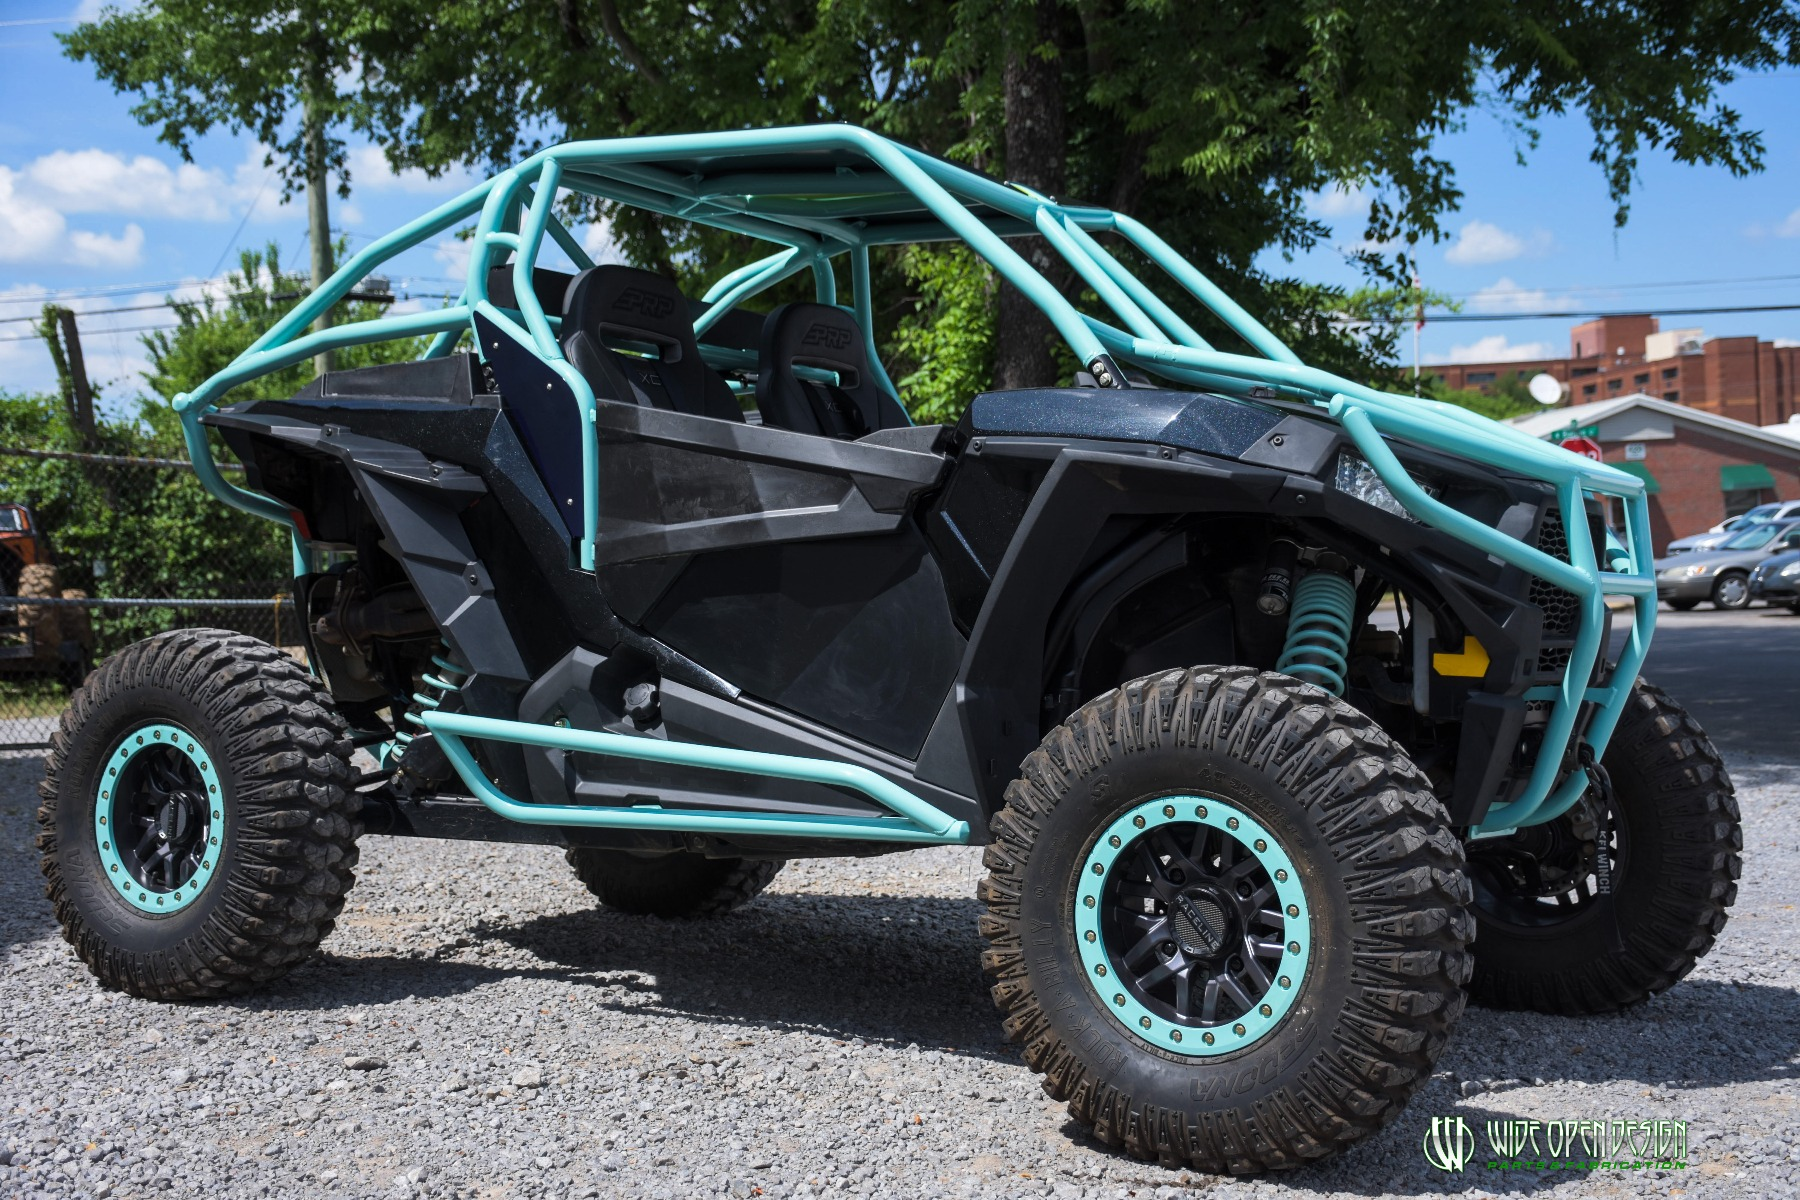 Wide Open Design UTV Cage RZR Cage Double Down featuring Double Pillars 35